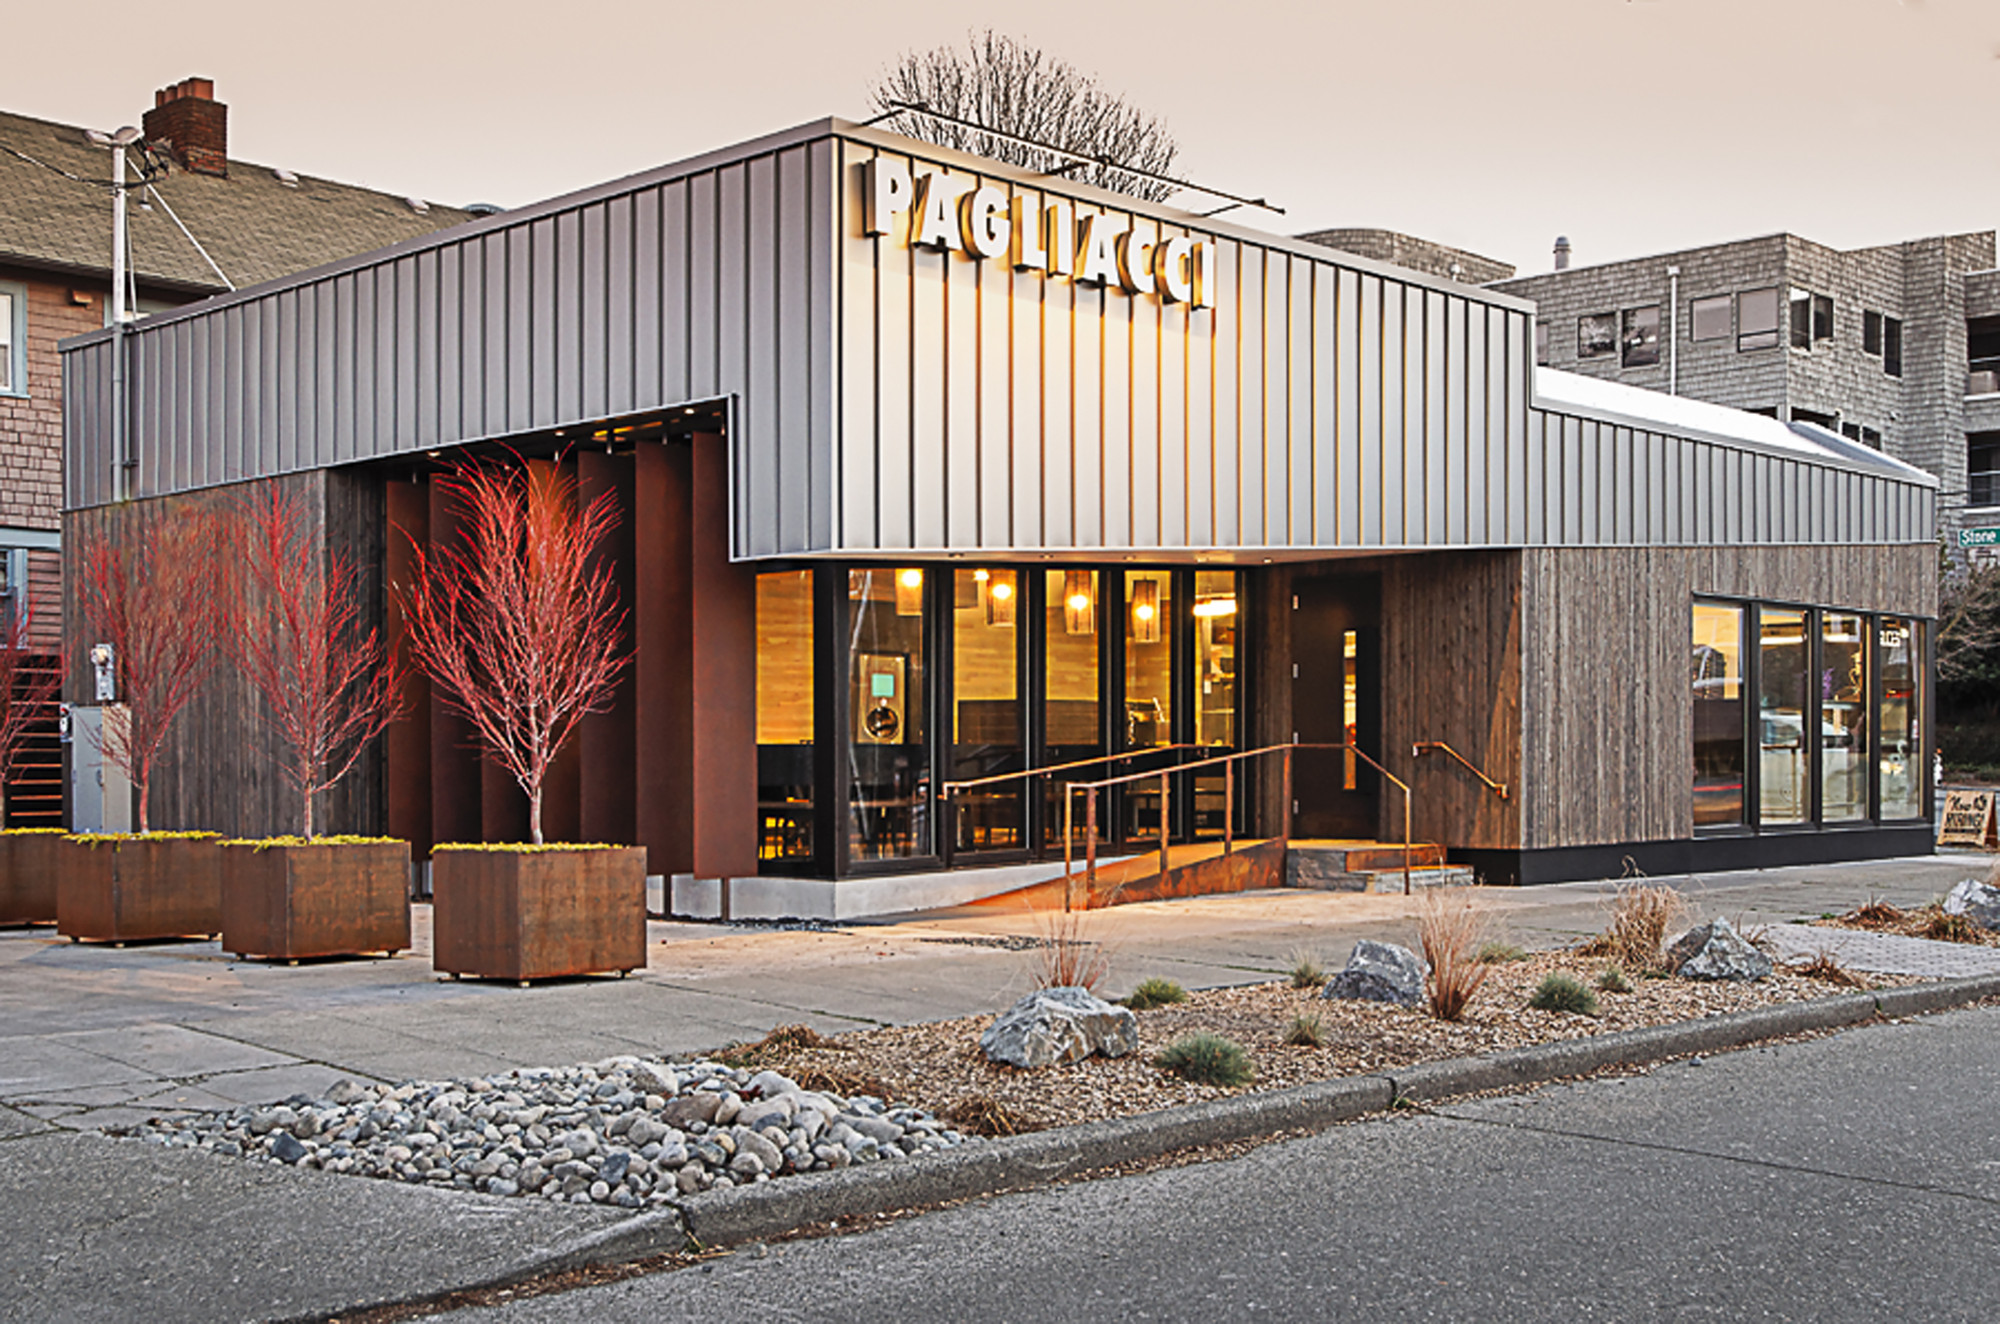 Pagliacci Pizza / Floisand Studio, Courtesy of Floisand Studio